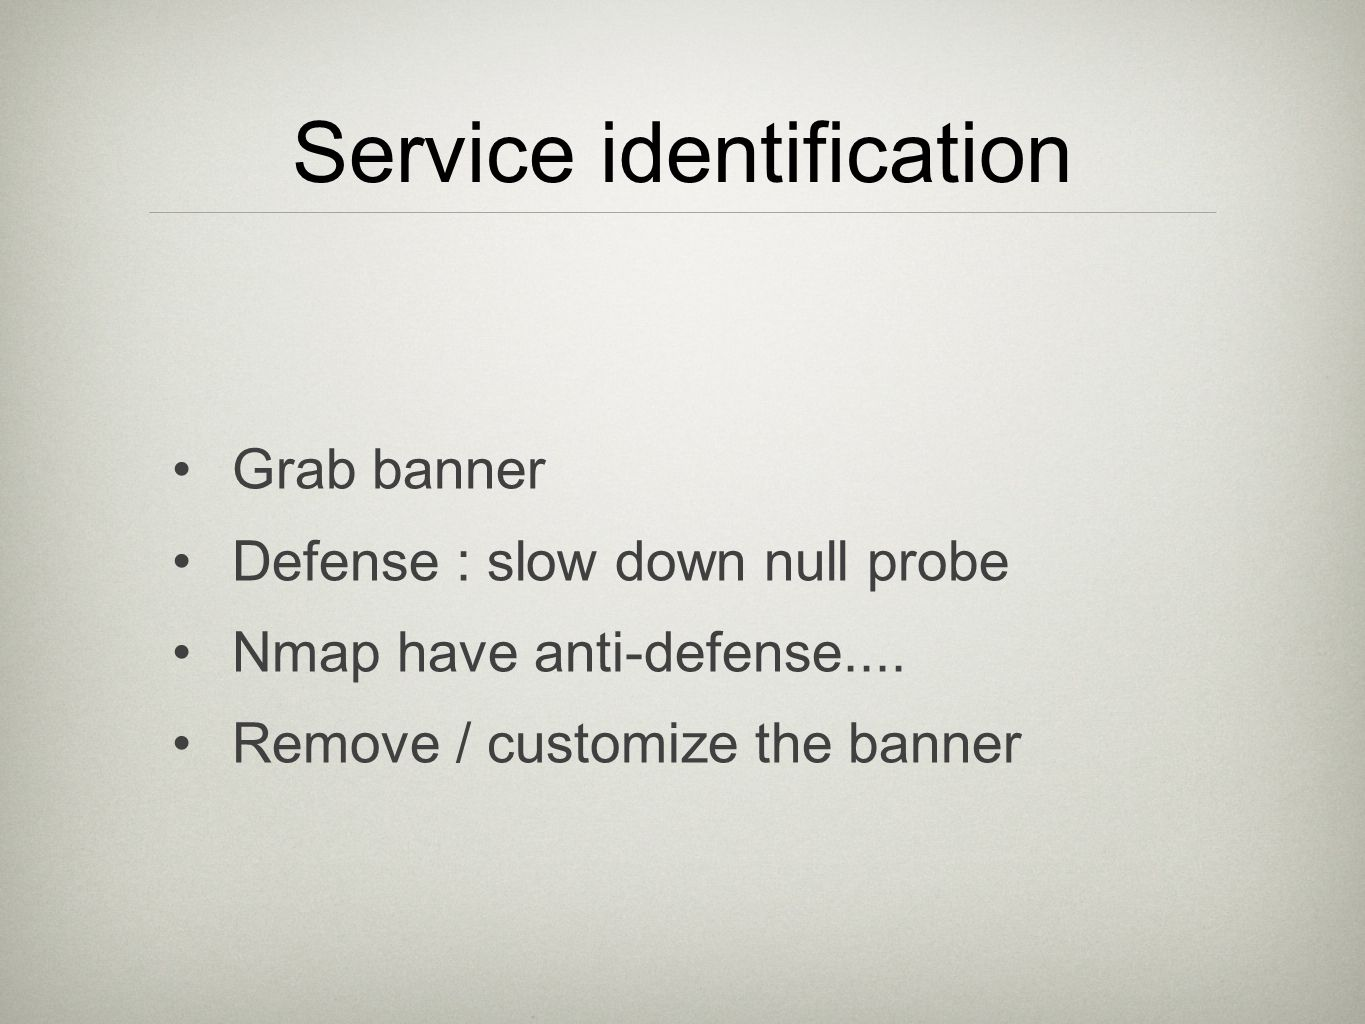 Service identification Grab banner Defense : slow down null probe Nmap have anti-defense.... Remove / customize the banner